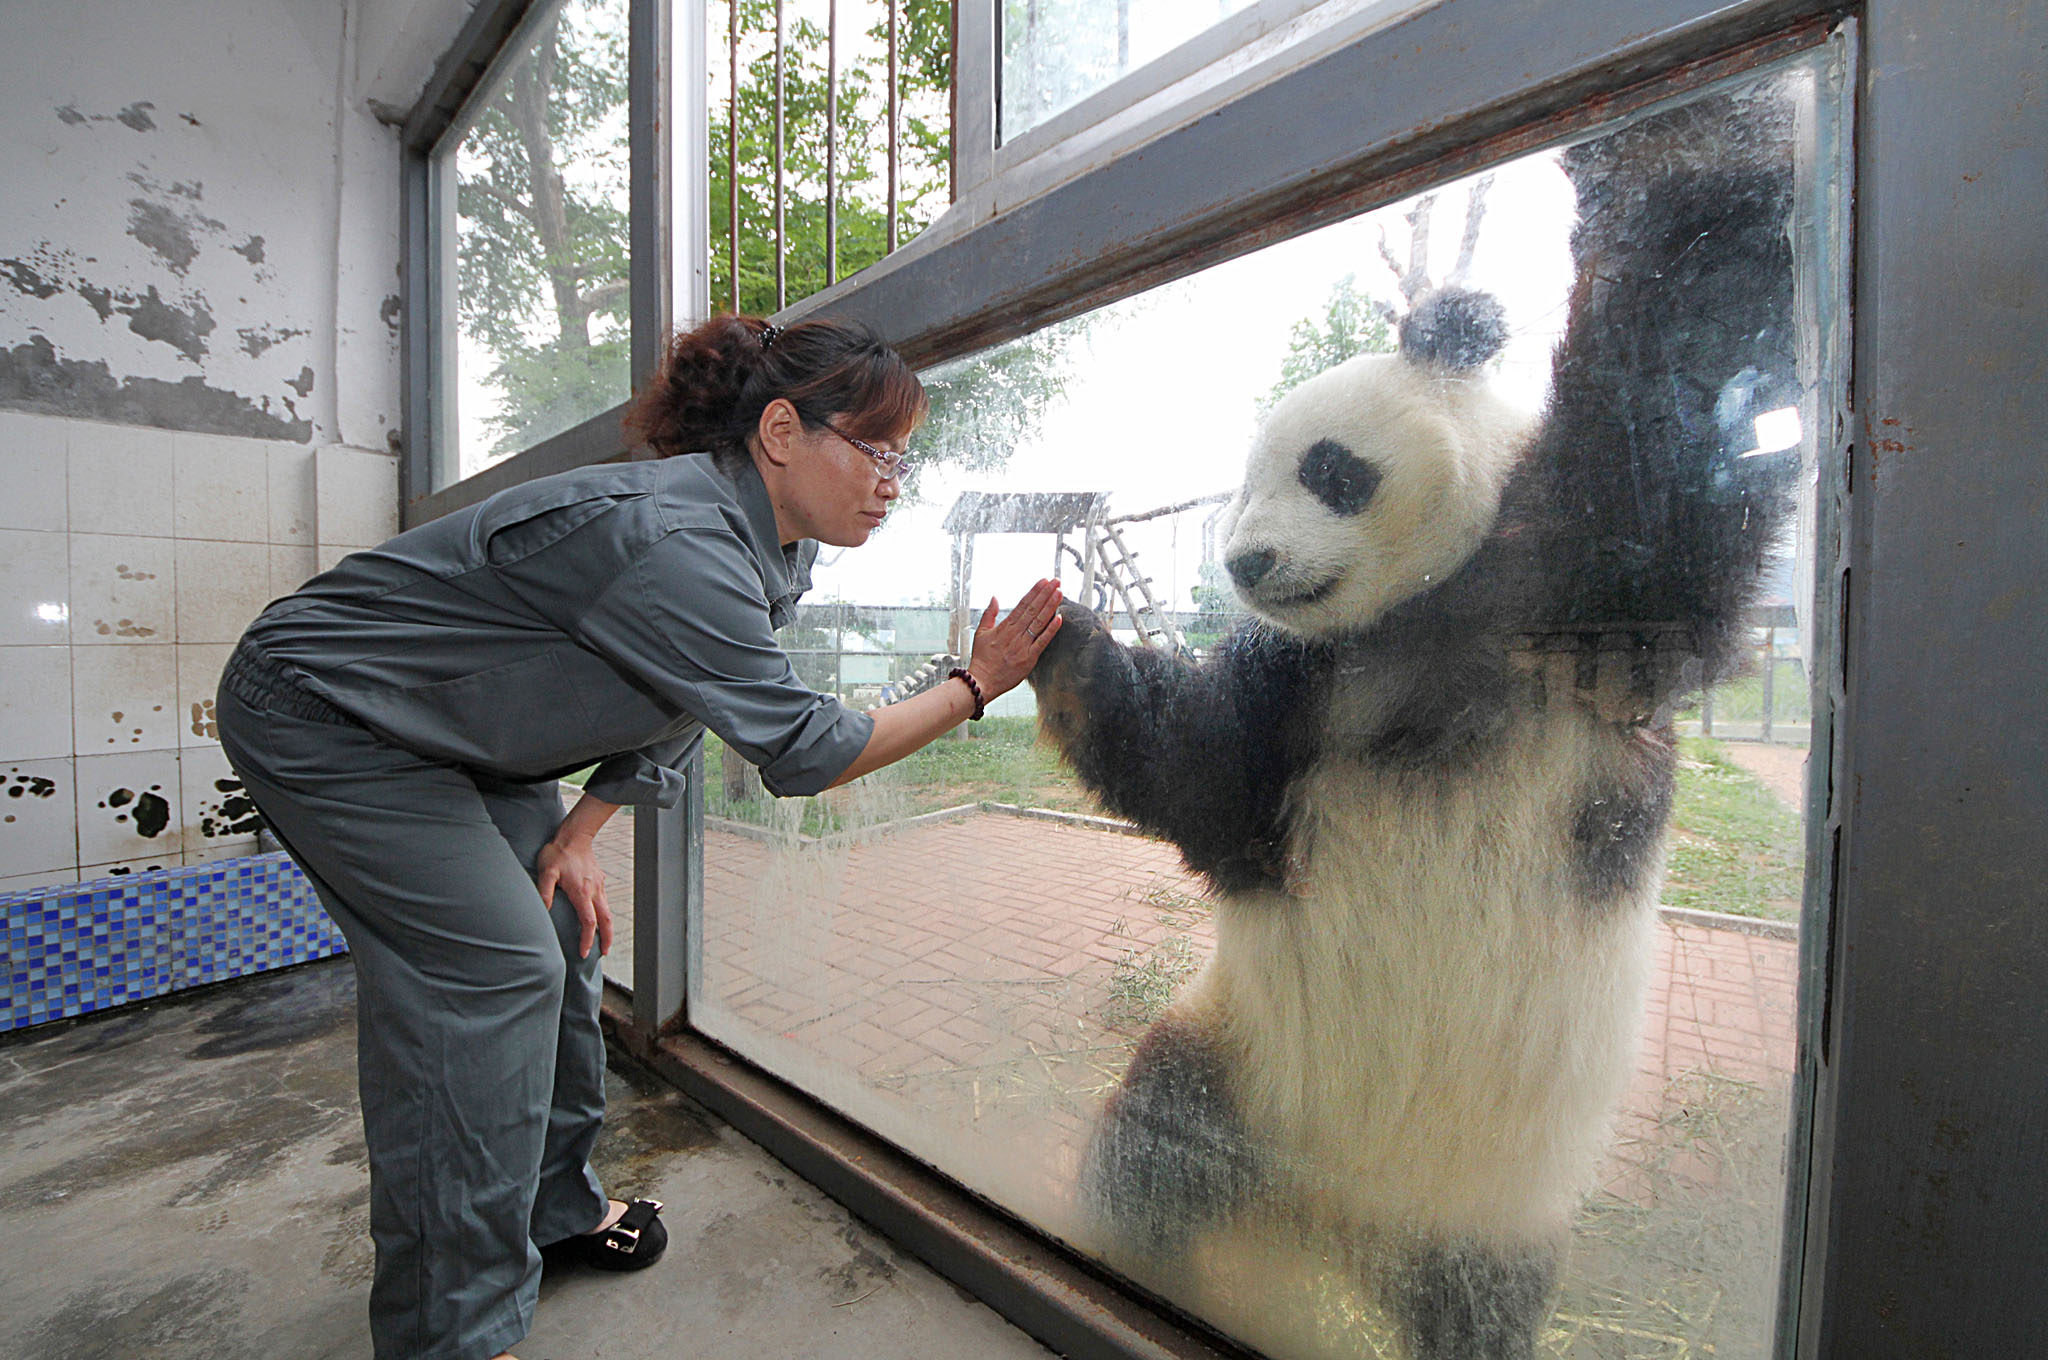 Giant Panda's At Yantai Nanshan Park Zoo...YANTAI, CHINA - JUNE 09: (CHINA OUT) Giant panda 'Huaao' shakes hands with a breeder across the glass at Yantai Nanshan Park Zoo on June 9, 2014 in Yantai, Shandong Province of China. Giant pandas Huaao and Qingfeng have finished their 3-year sojourn in Yantai and will be sent back to Ya'an Bifeng Gorge Breeding Base of Sichuan on Tuesday.